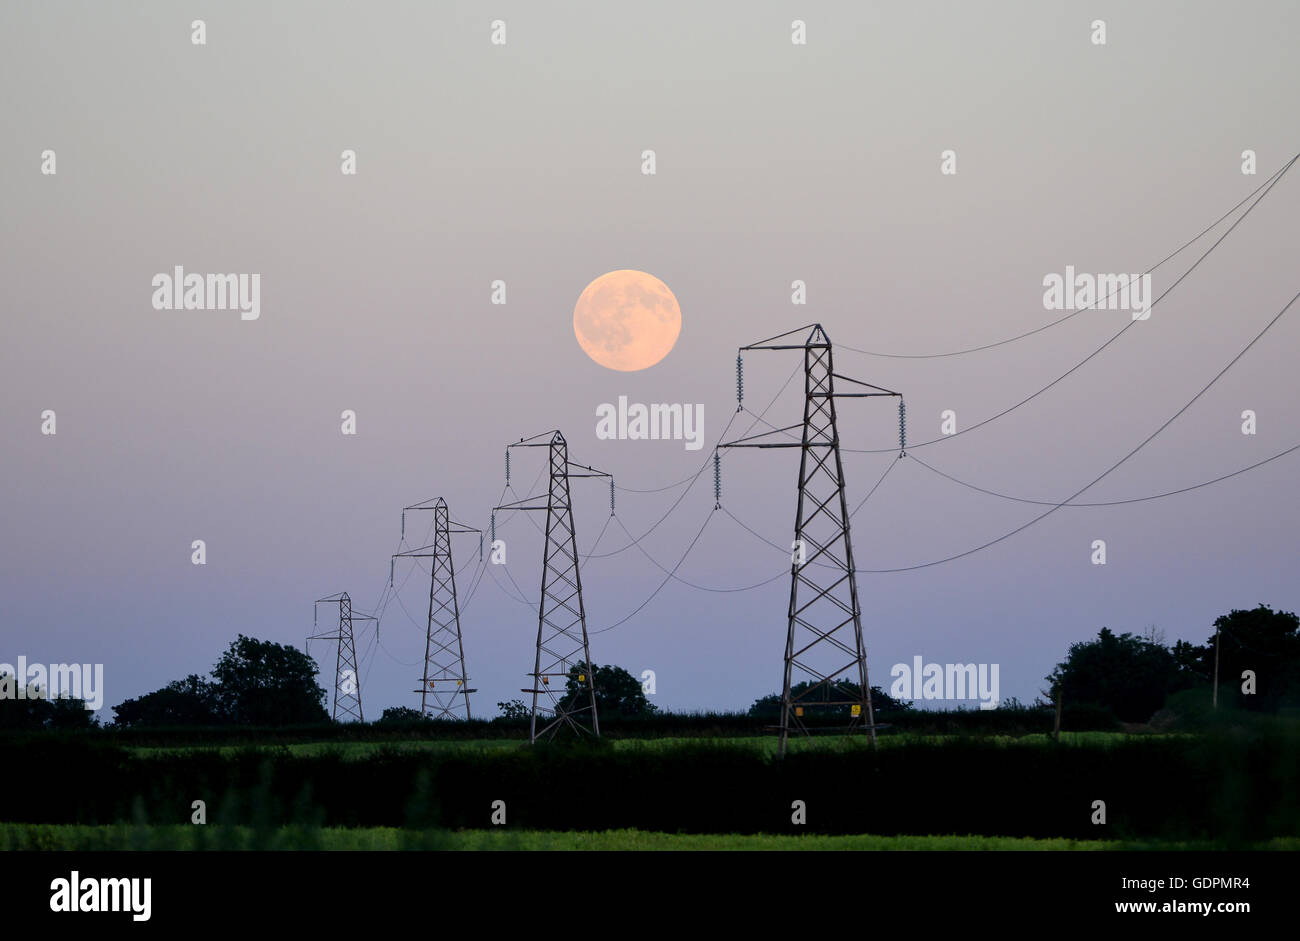 Full moon rising behind electricity pylons - Stock Image